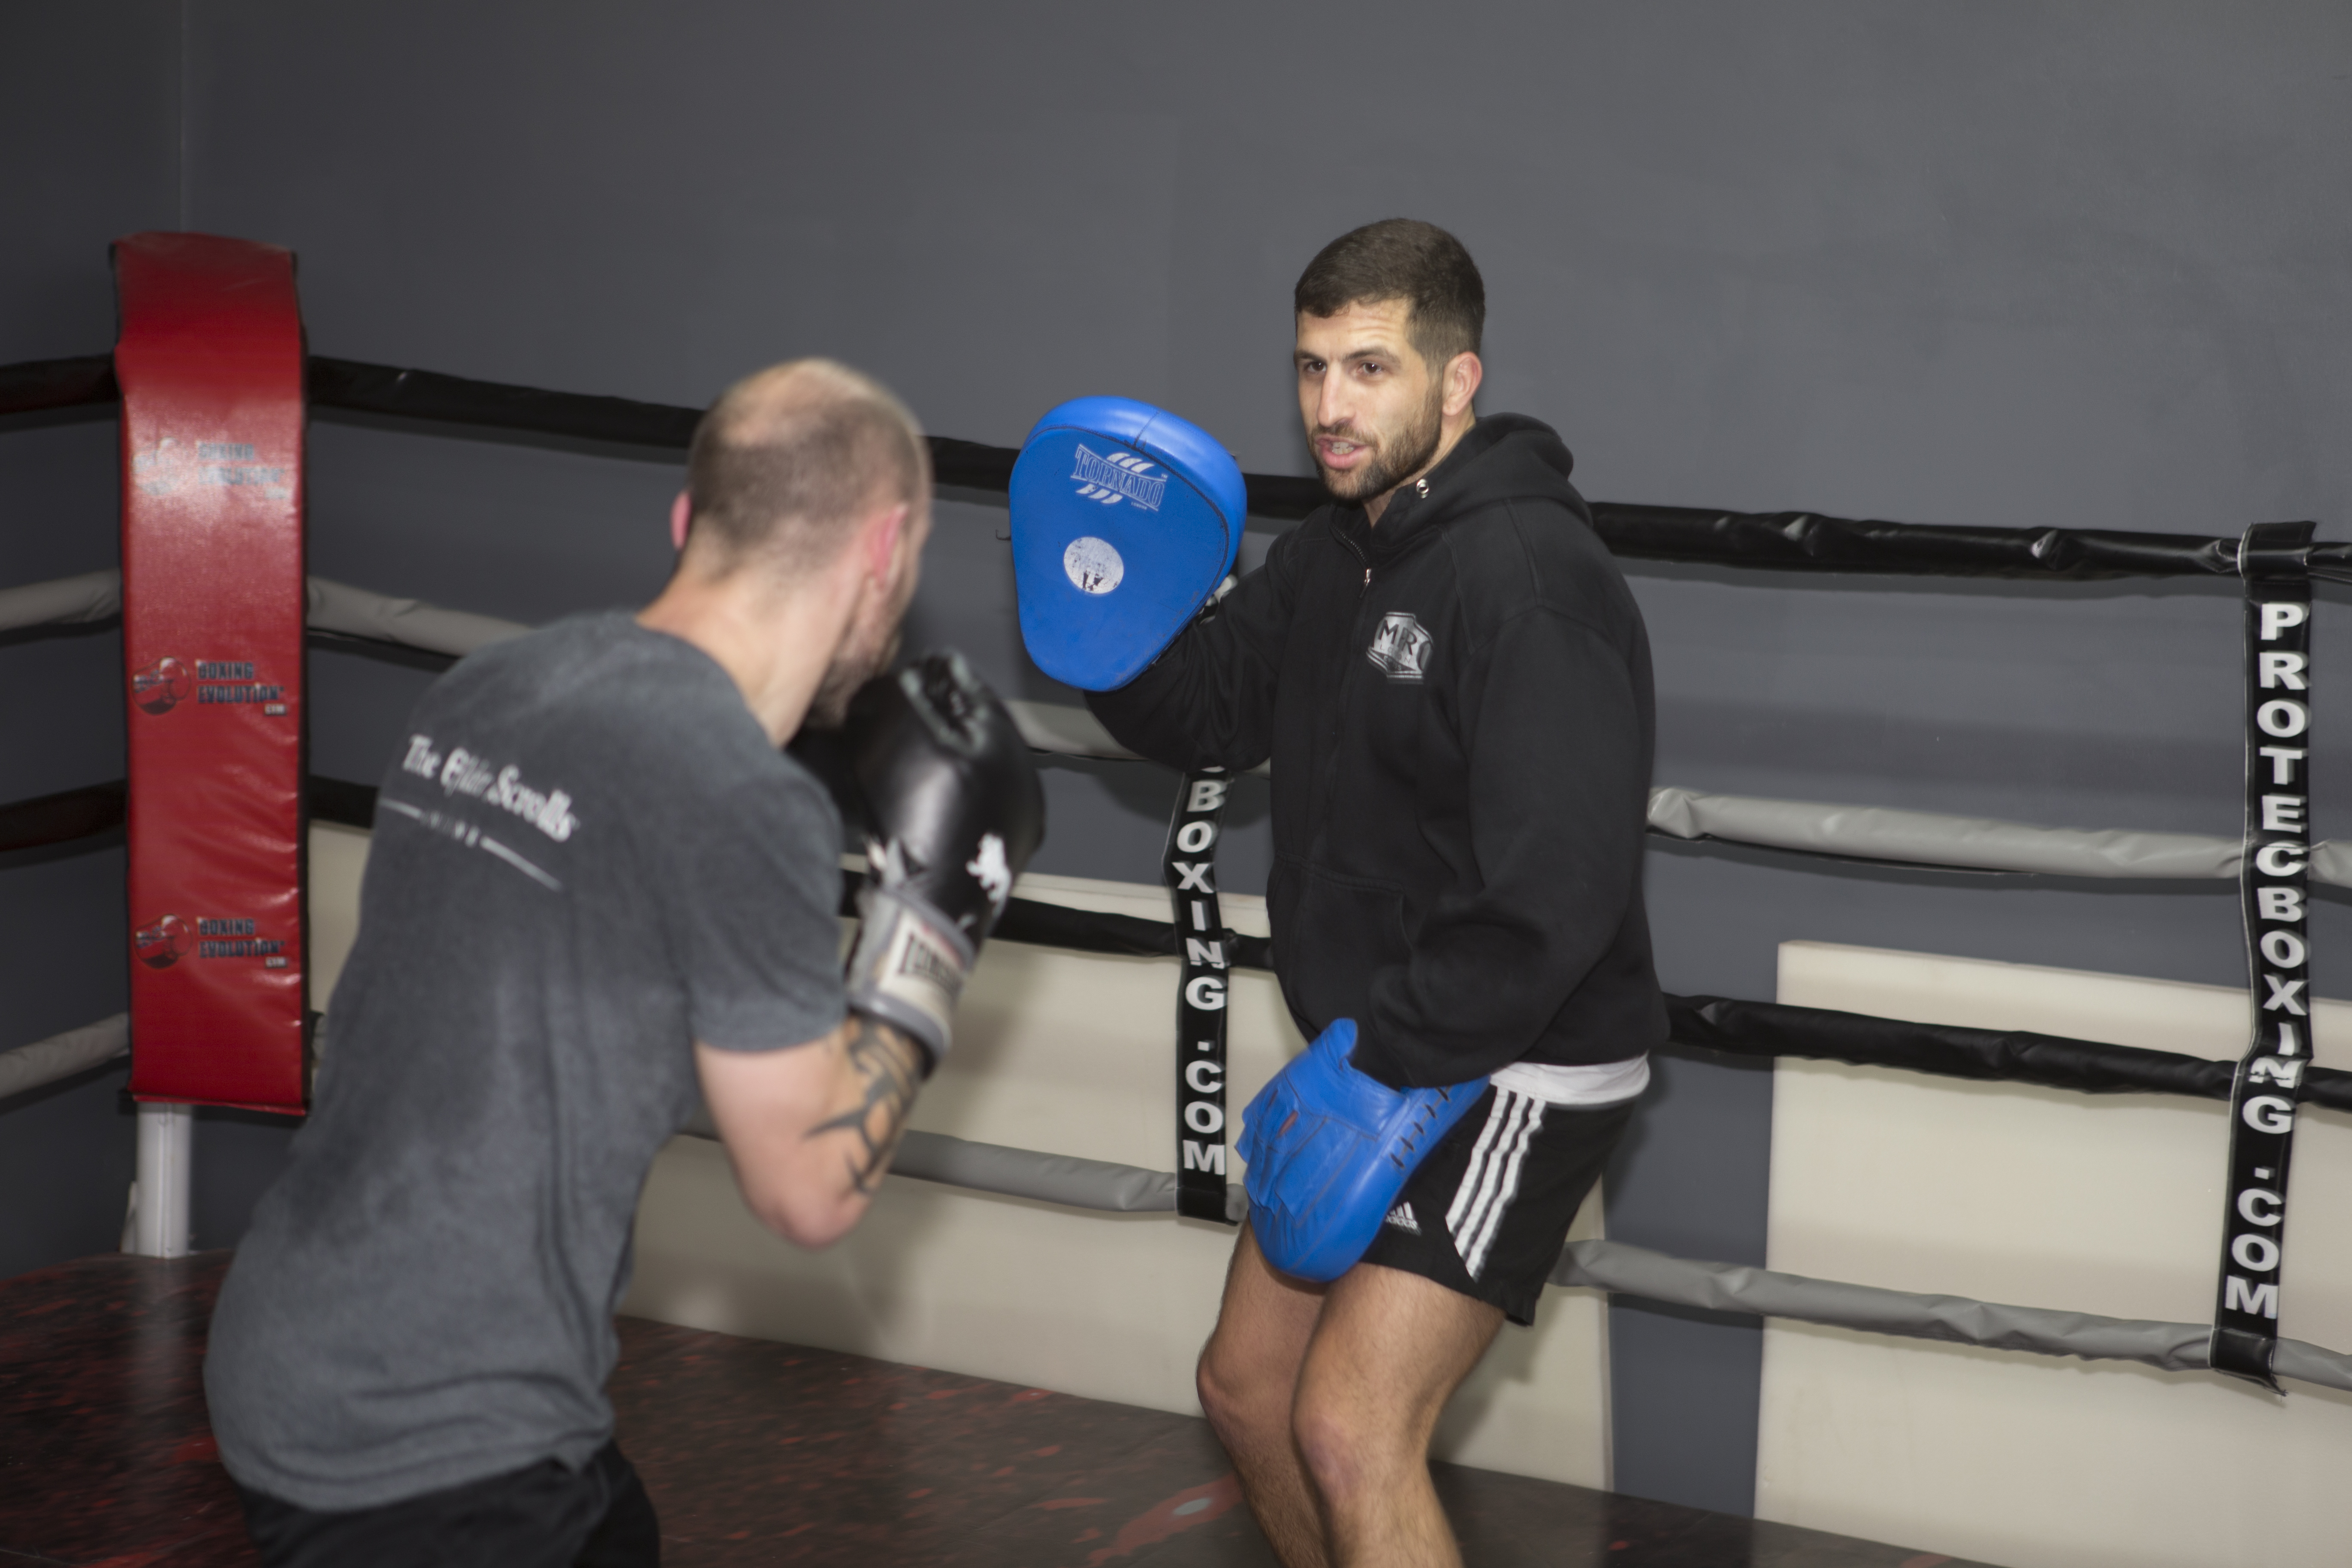 Personal boxing fitness training